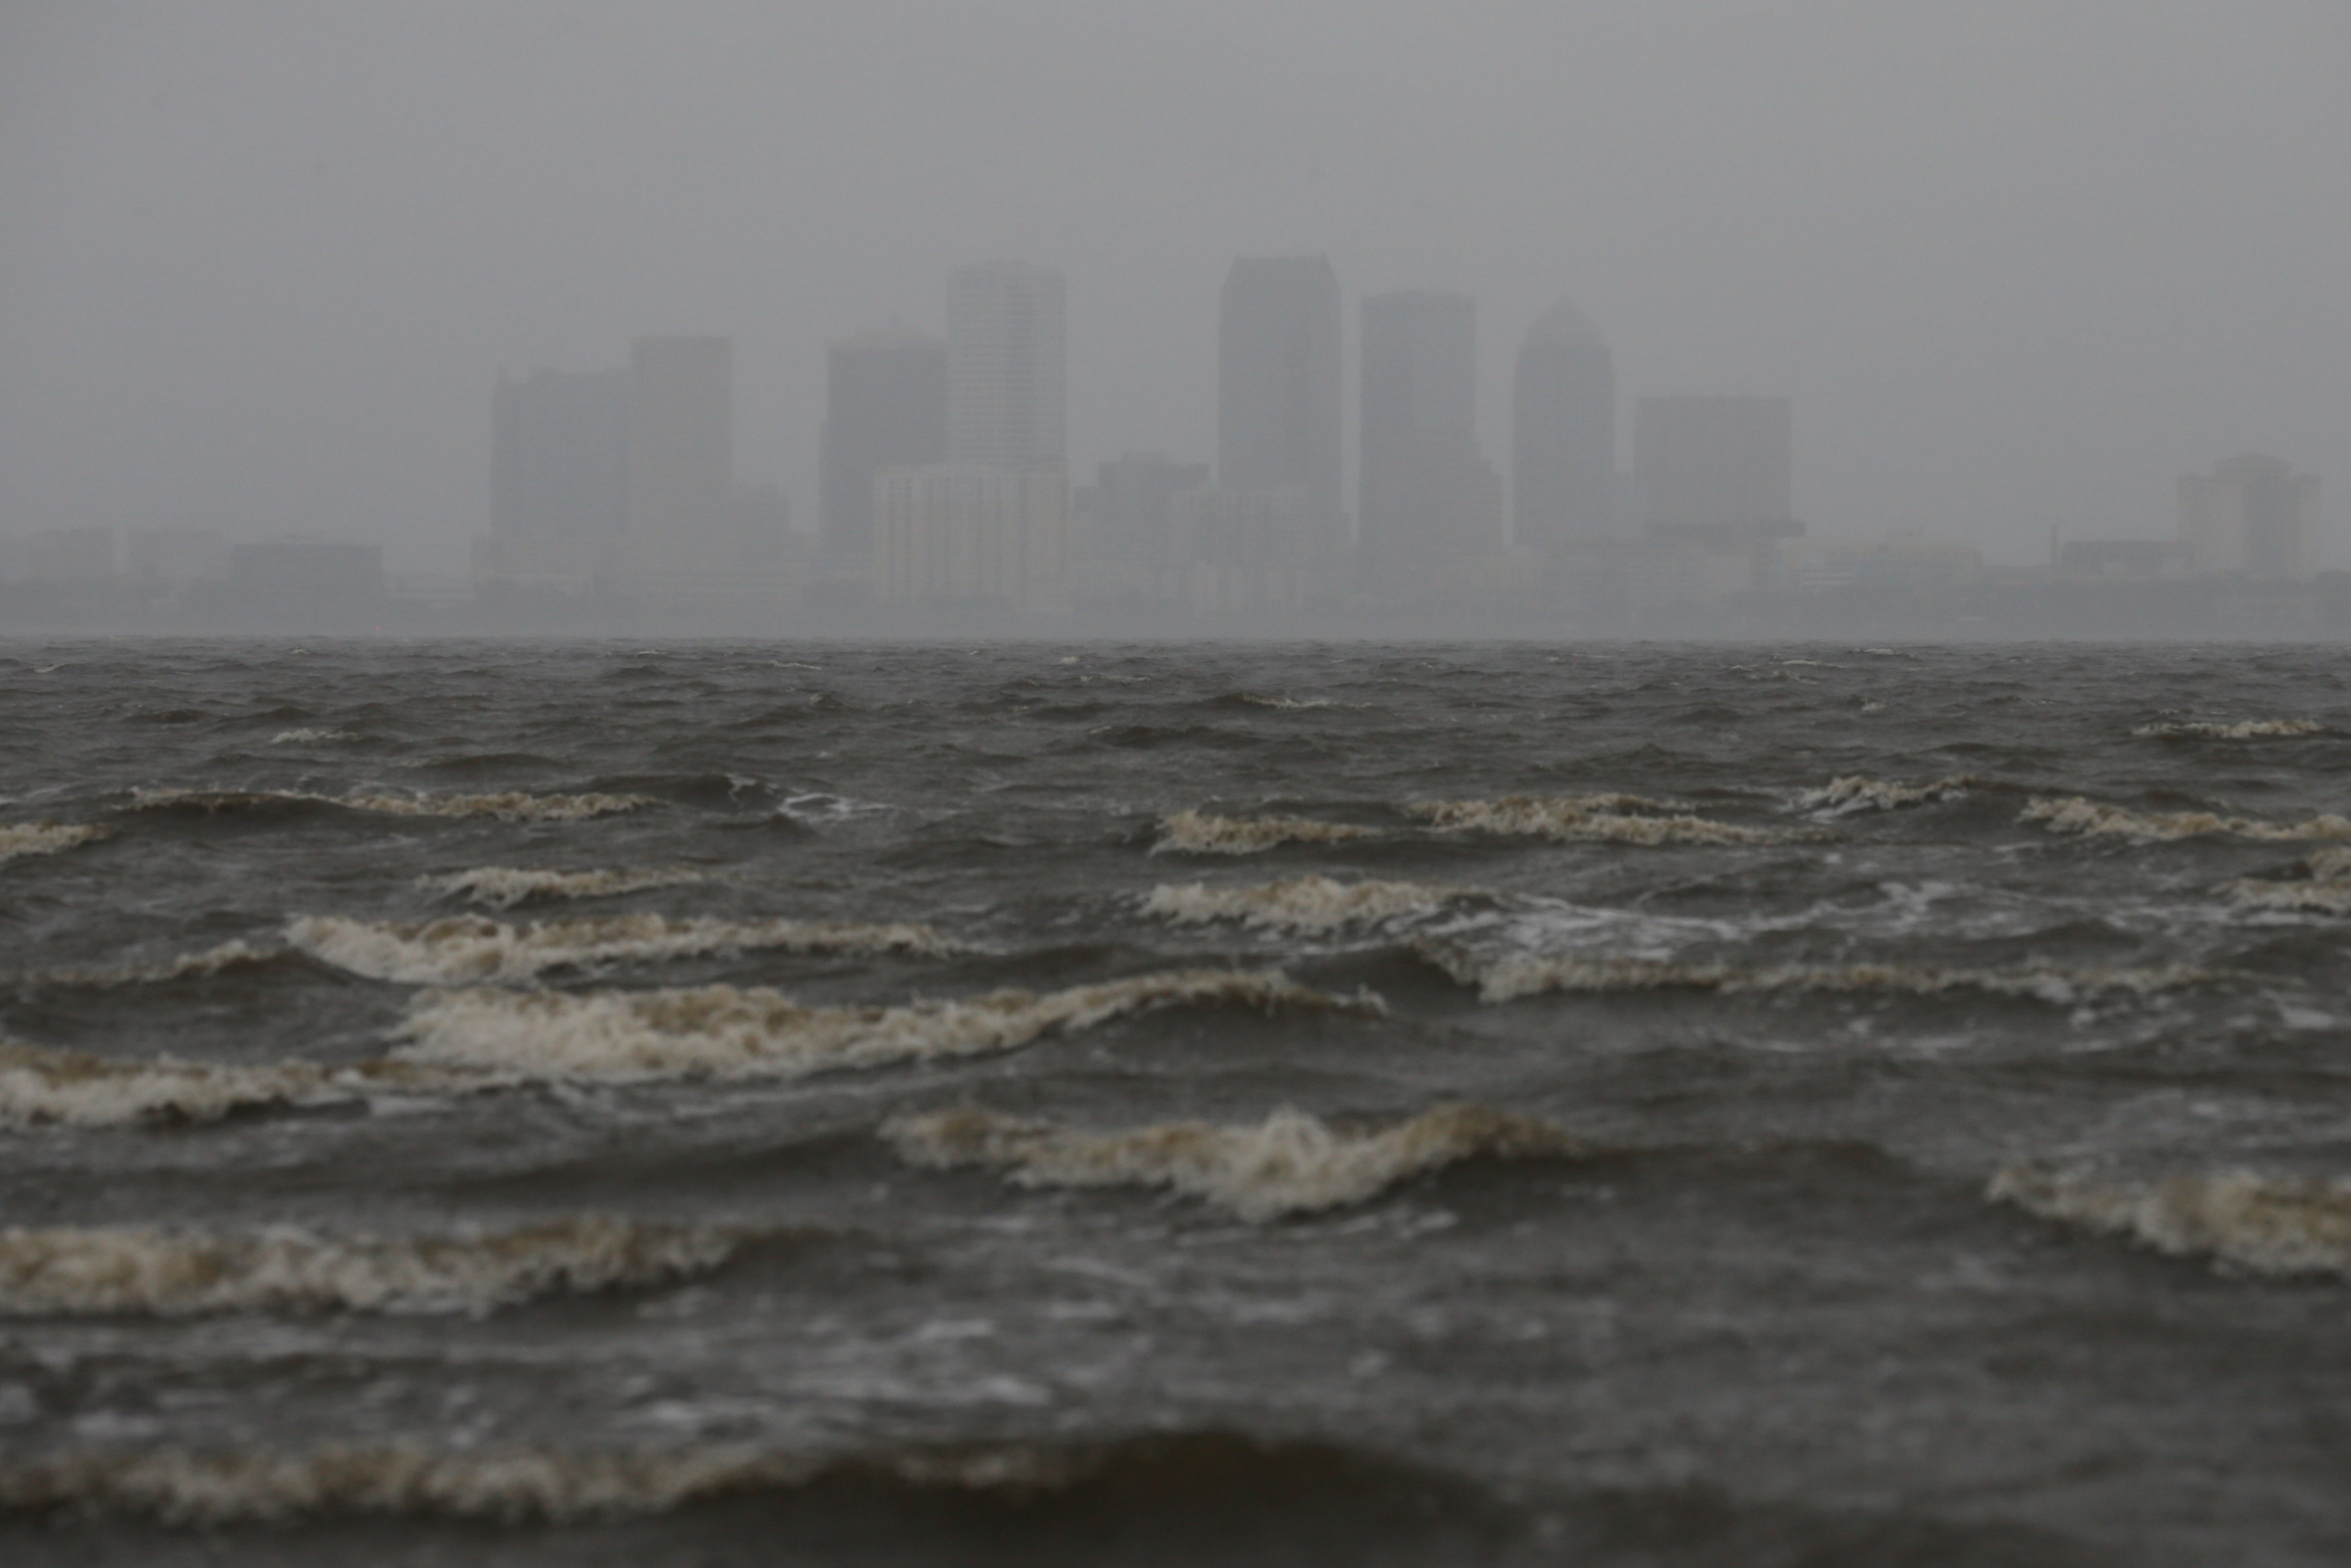 The Tampa skyline is pictured across Hillsborough Bay ahead of the arrival of Hurricane Irma in Tampa, Florida on Sept. 10, 2017. (REUTERS/Chris Wattie)